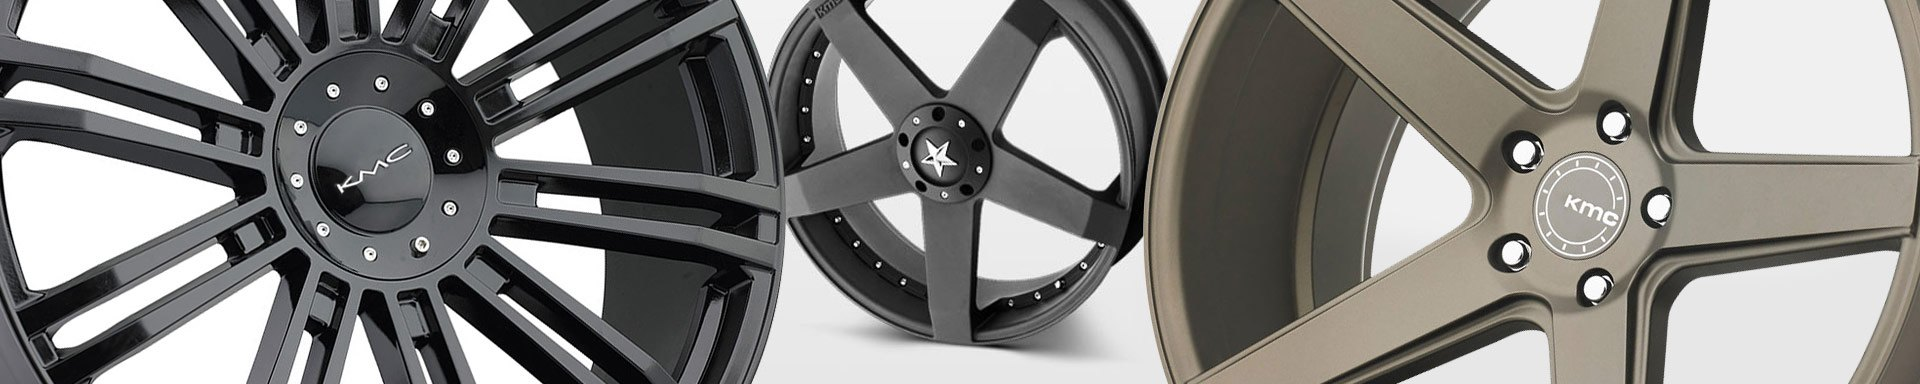 Universal KMC WHEELS & RIMS